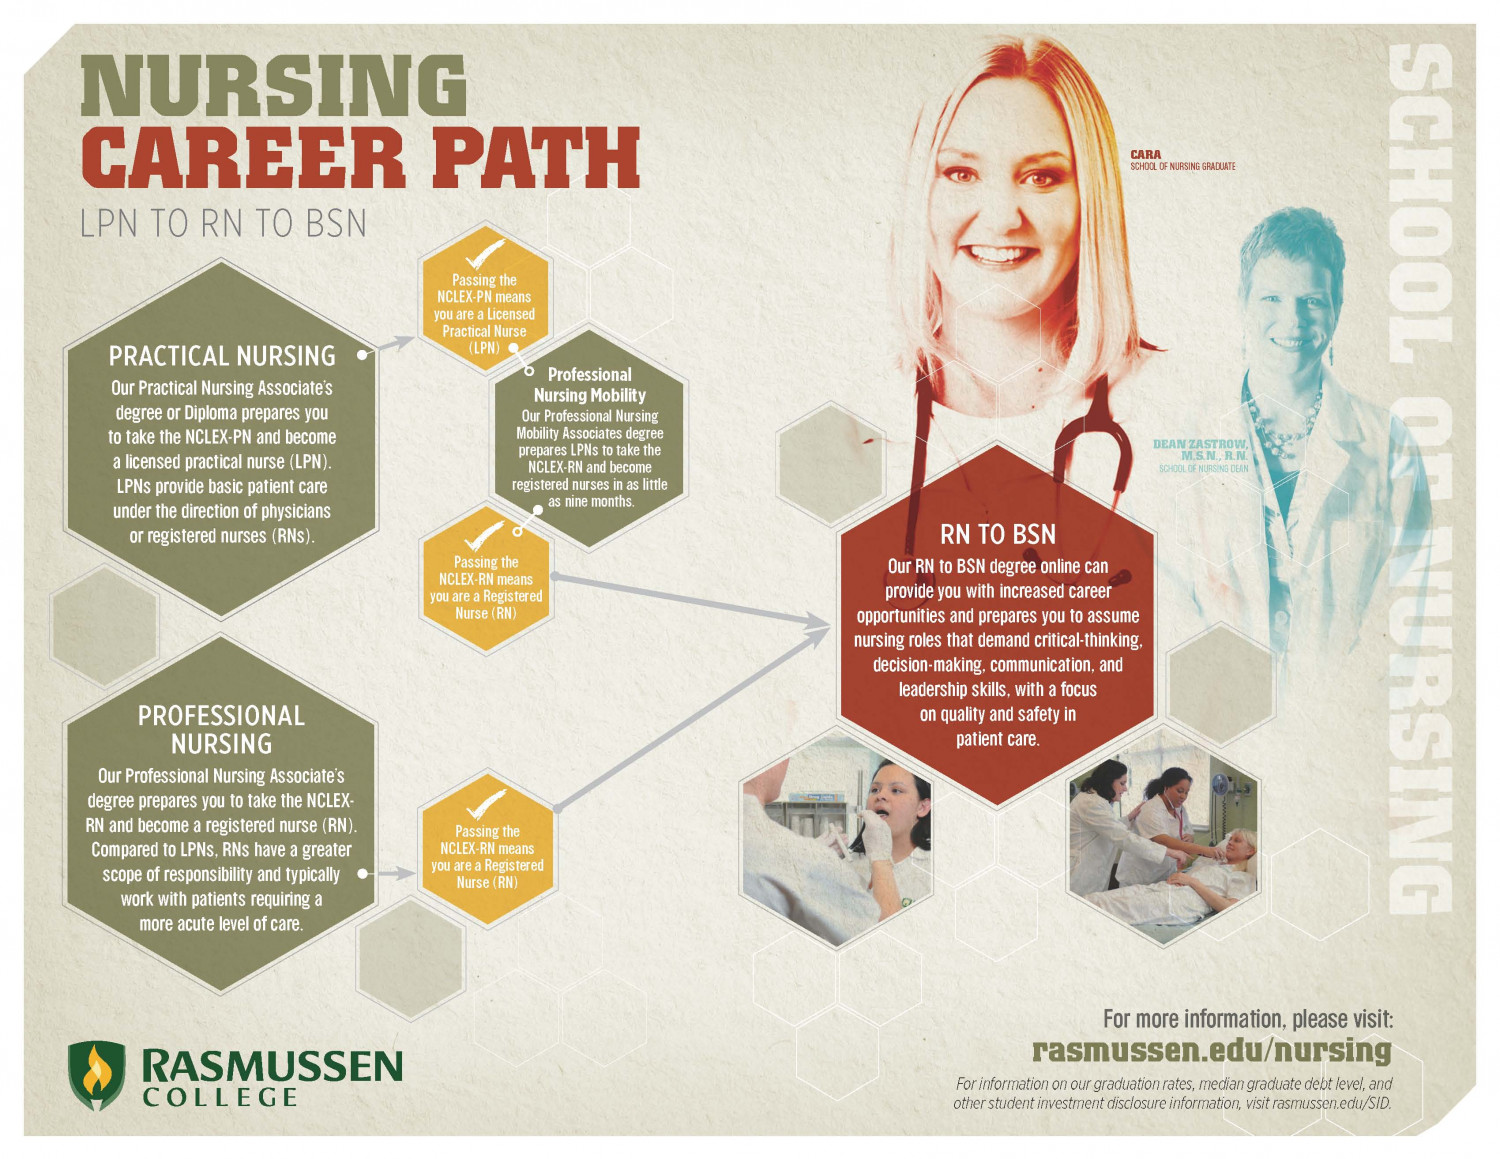 Nursing Career Path Infographic